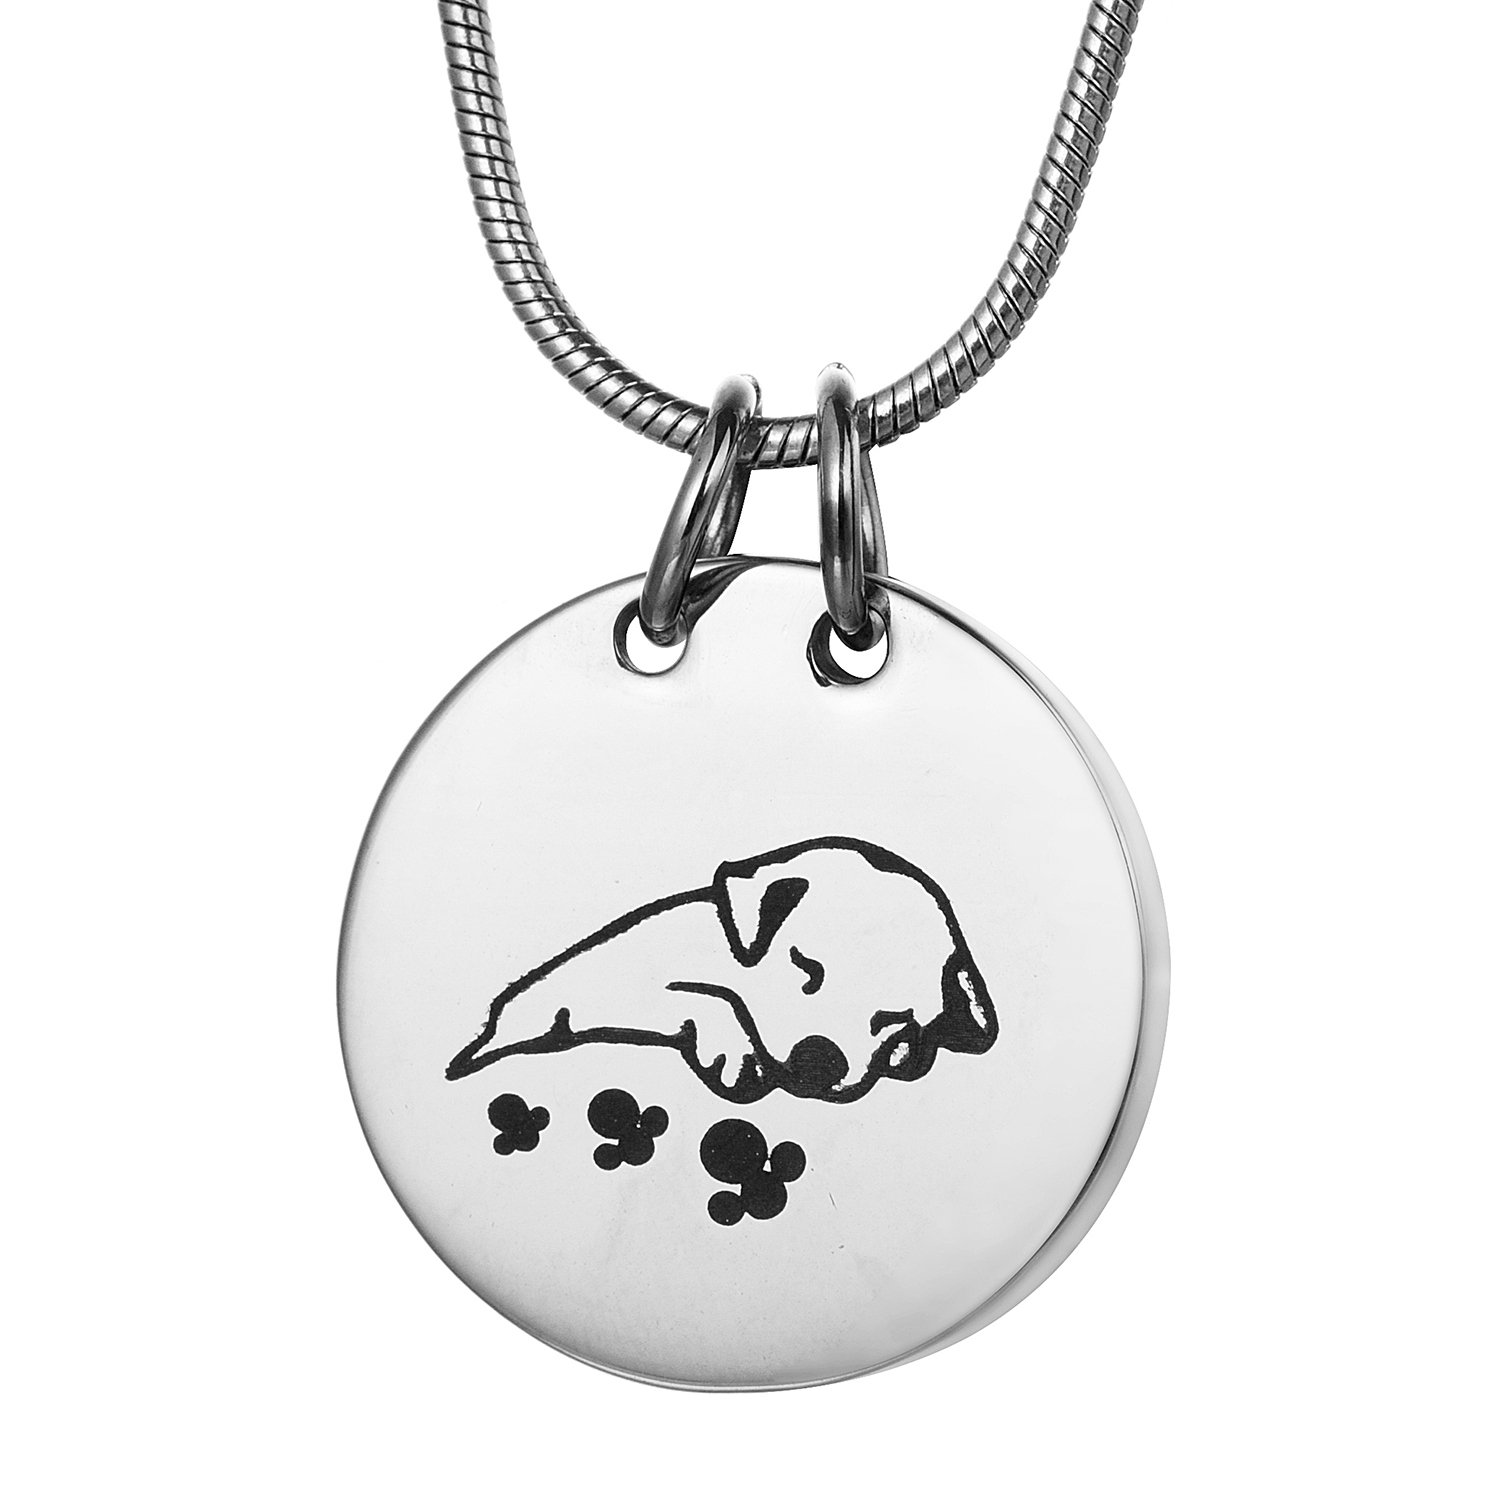 COCO Park Engraving Sleeping Dog Pet Cremation Necklace Memorial Ashes Urn Pendant Jewelry Keepsake